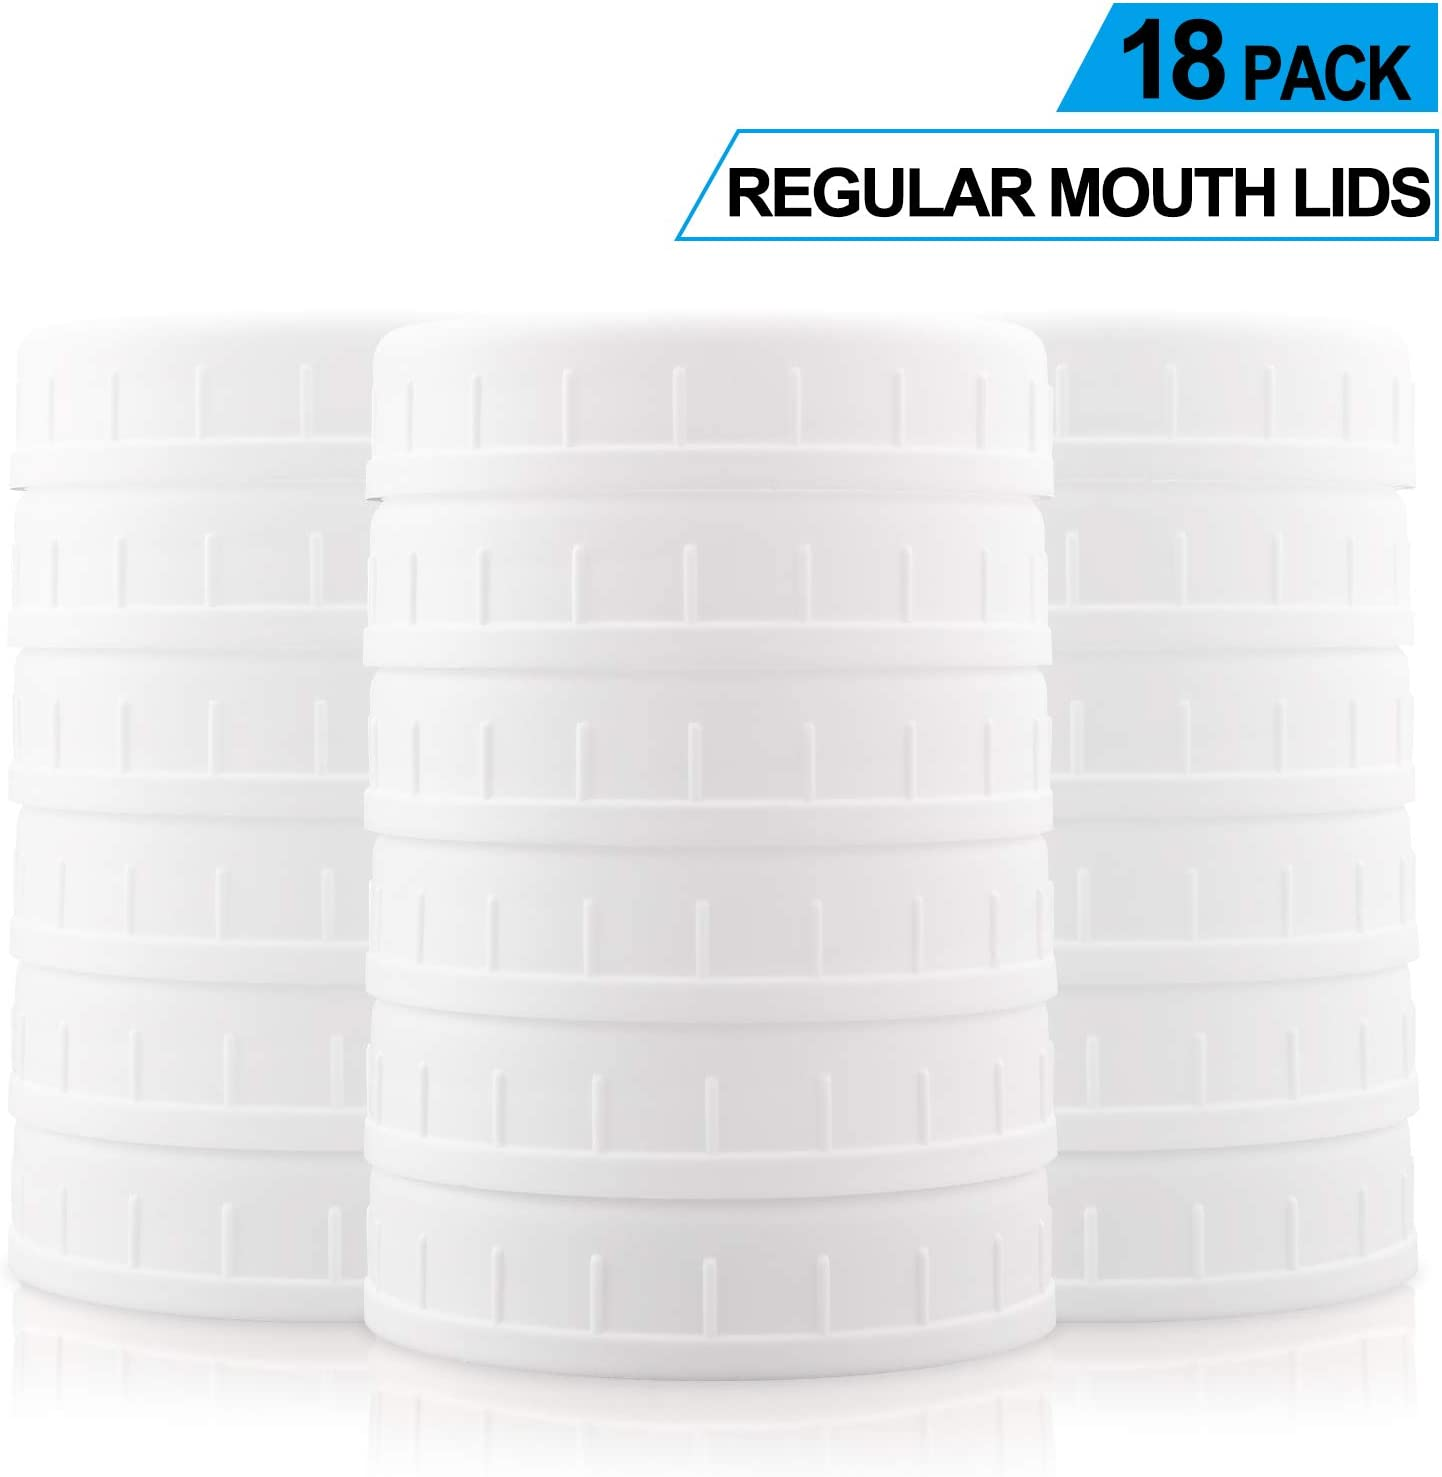 [18 Pack] Plastic REGULAR Mouth Mason Jar Lids for Ball, Kerr and More - Food Grade White Plastic Storage Caps for Mason/Canning Jars - Anti-Scratch Resistant Surface